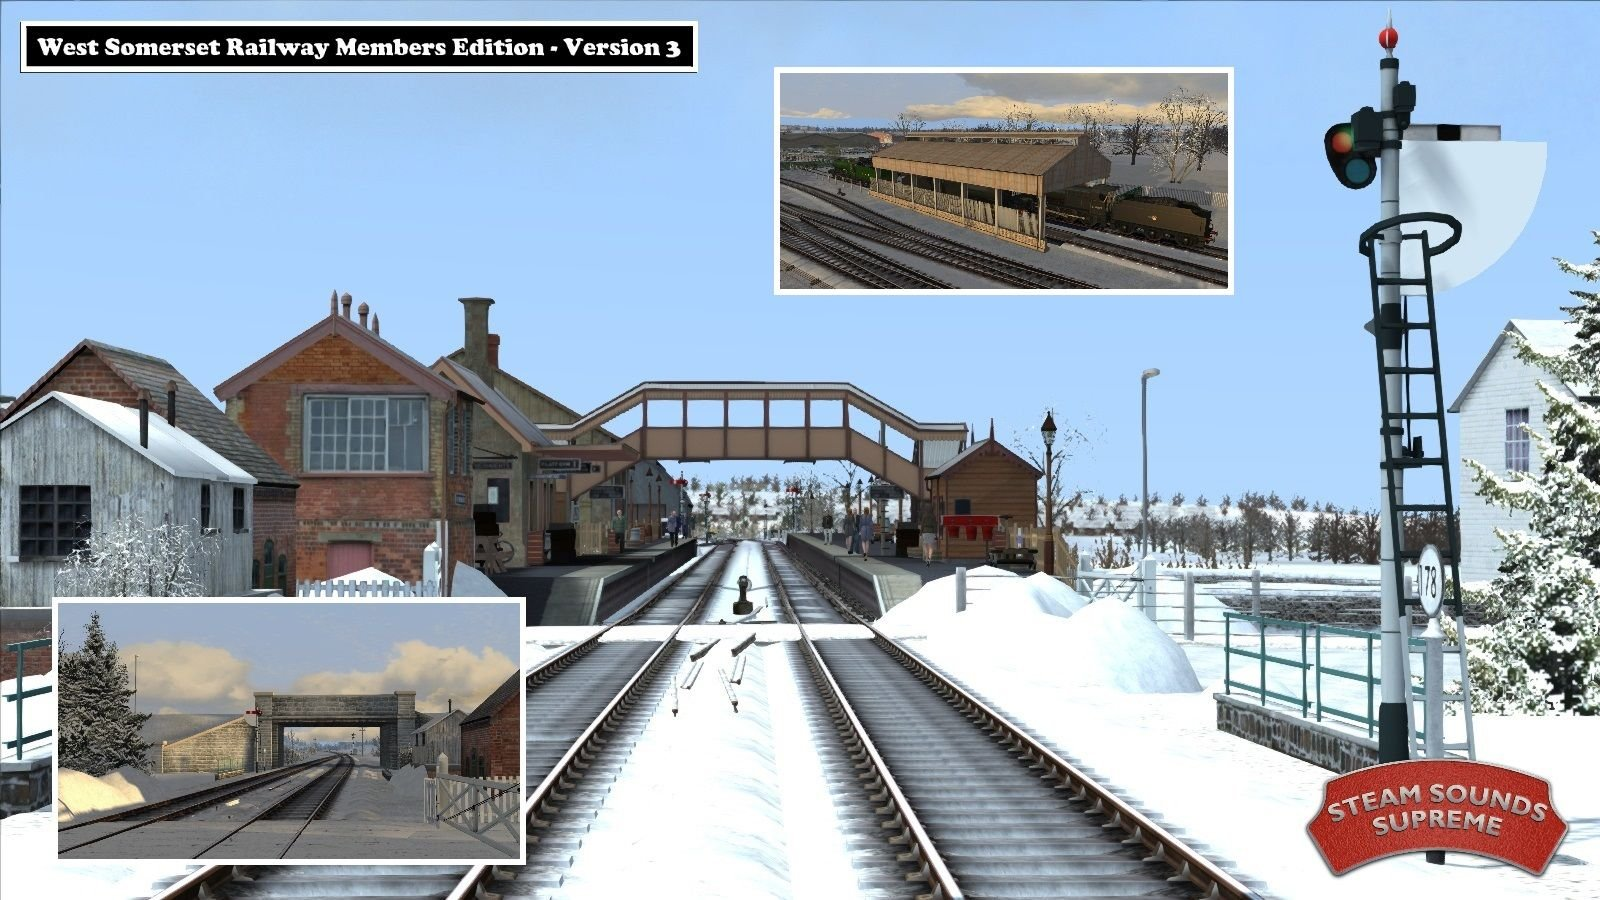 WEST SOMERSET RAILWAY MEMBERS EDITION Freeware